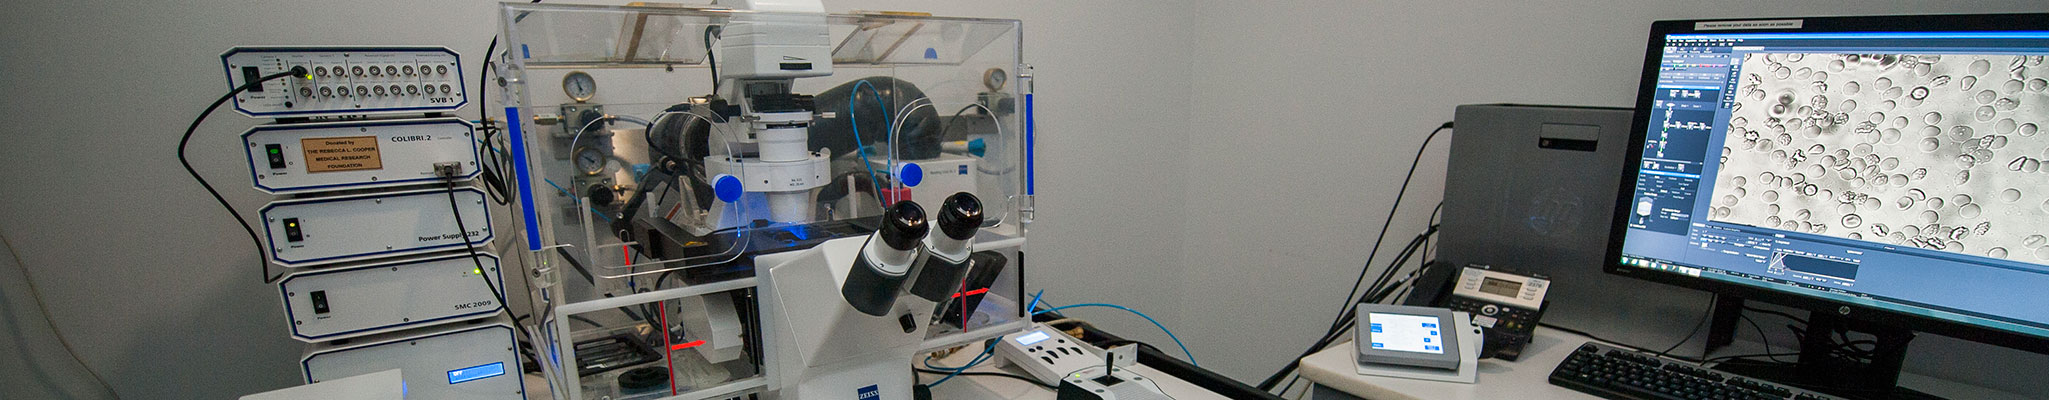 Zeiss Axio Observer microscope set up